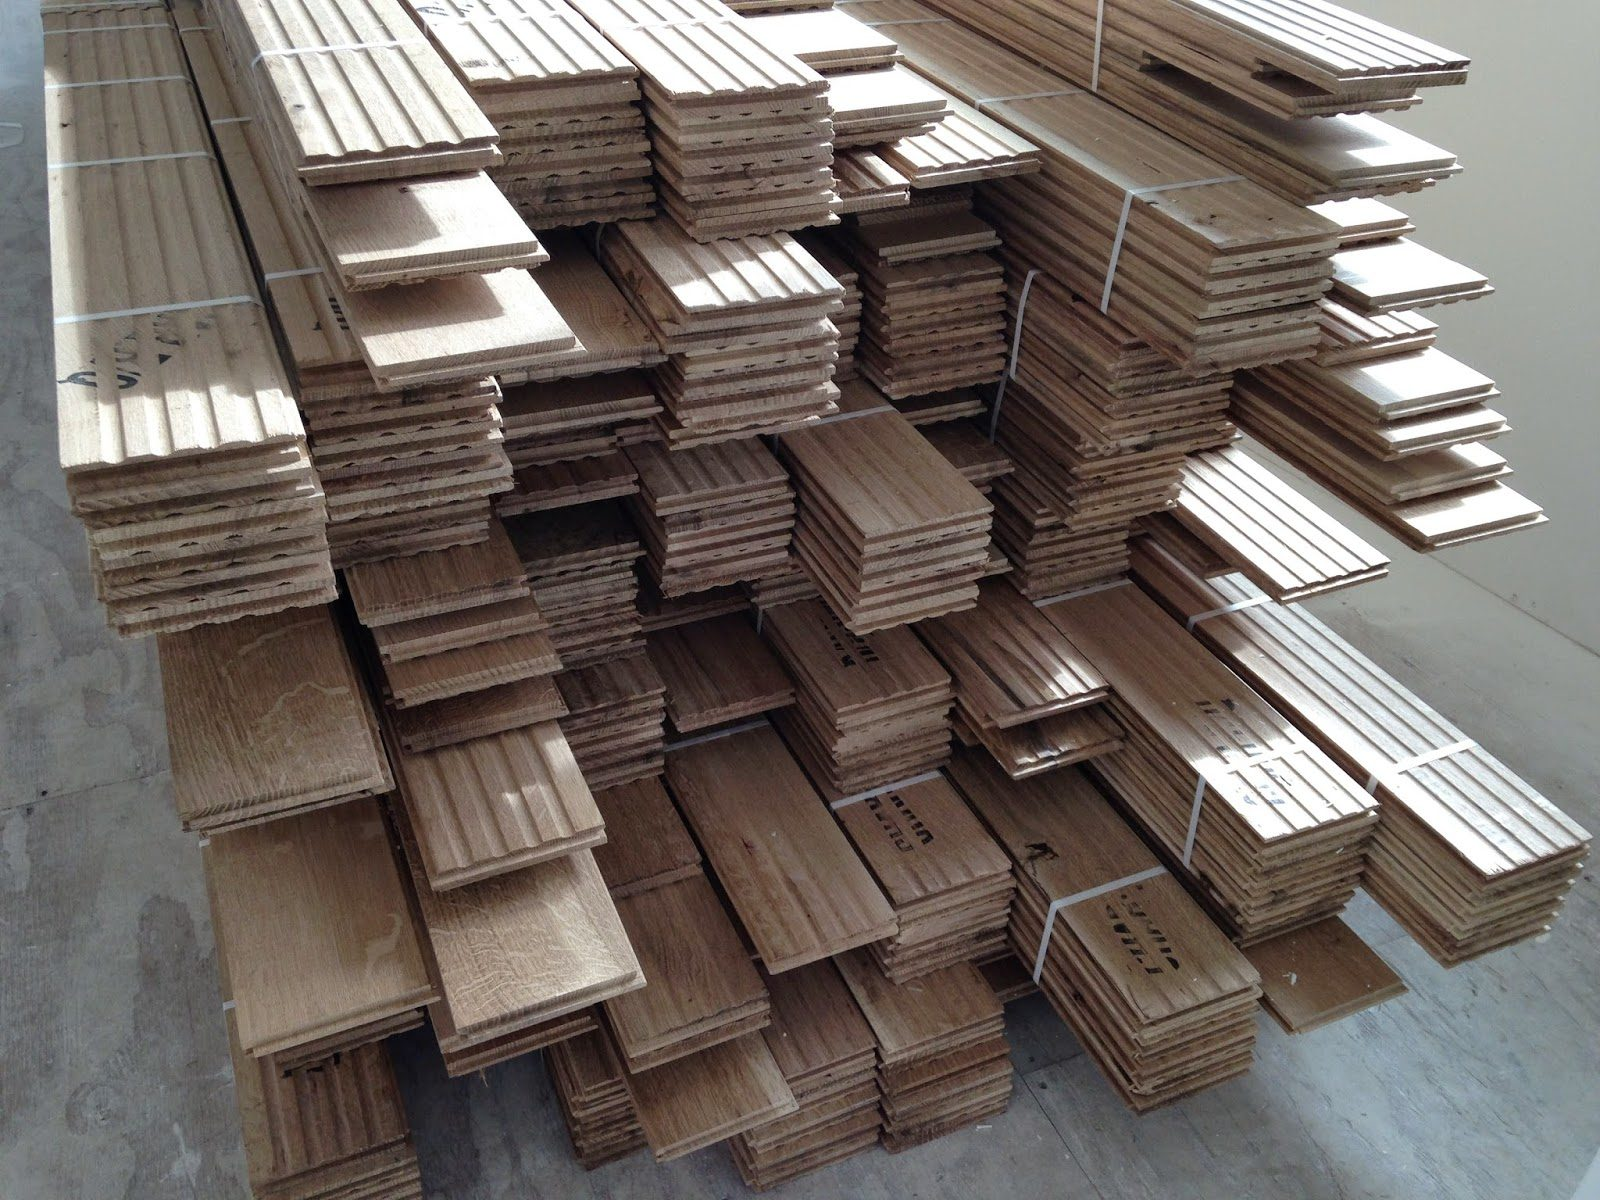 acclimating_the_floor|acclimataing_flooring|acclimation_the_floor_boards_in_the_boxes